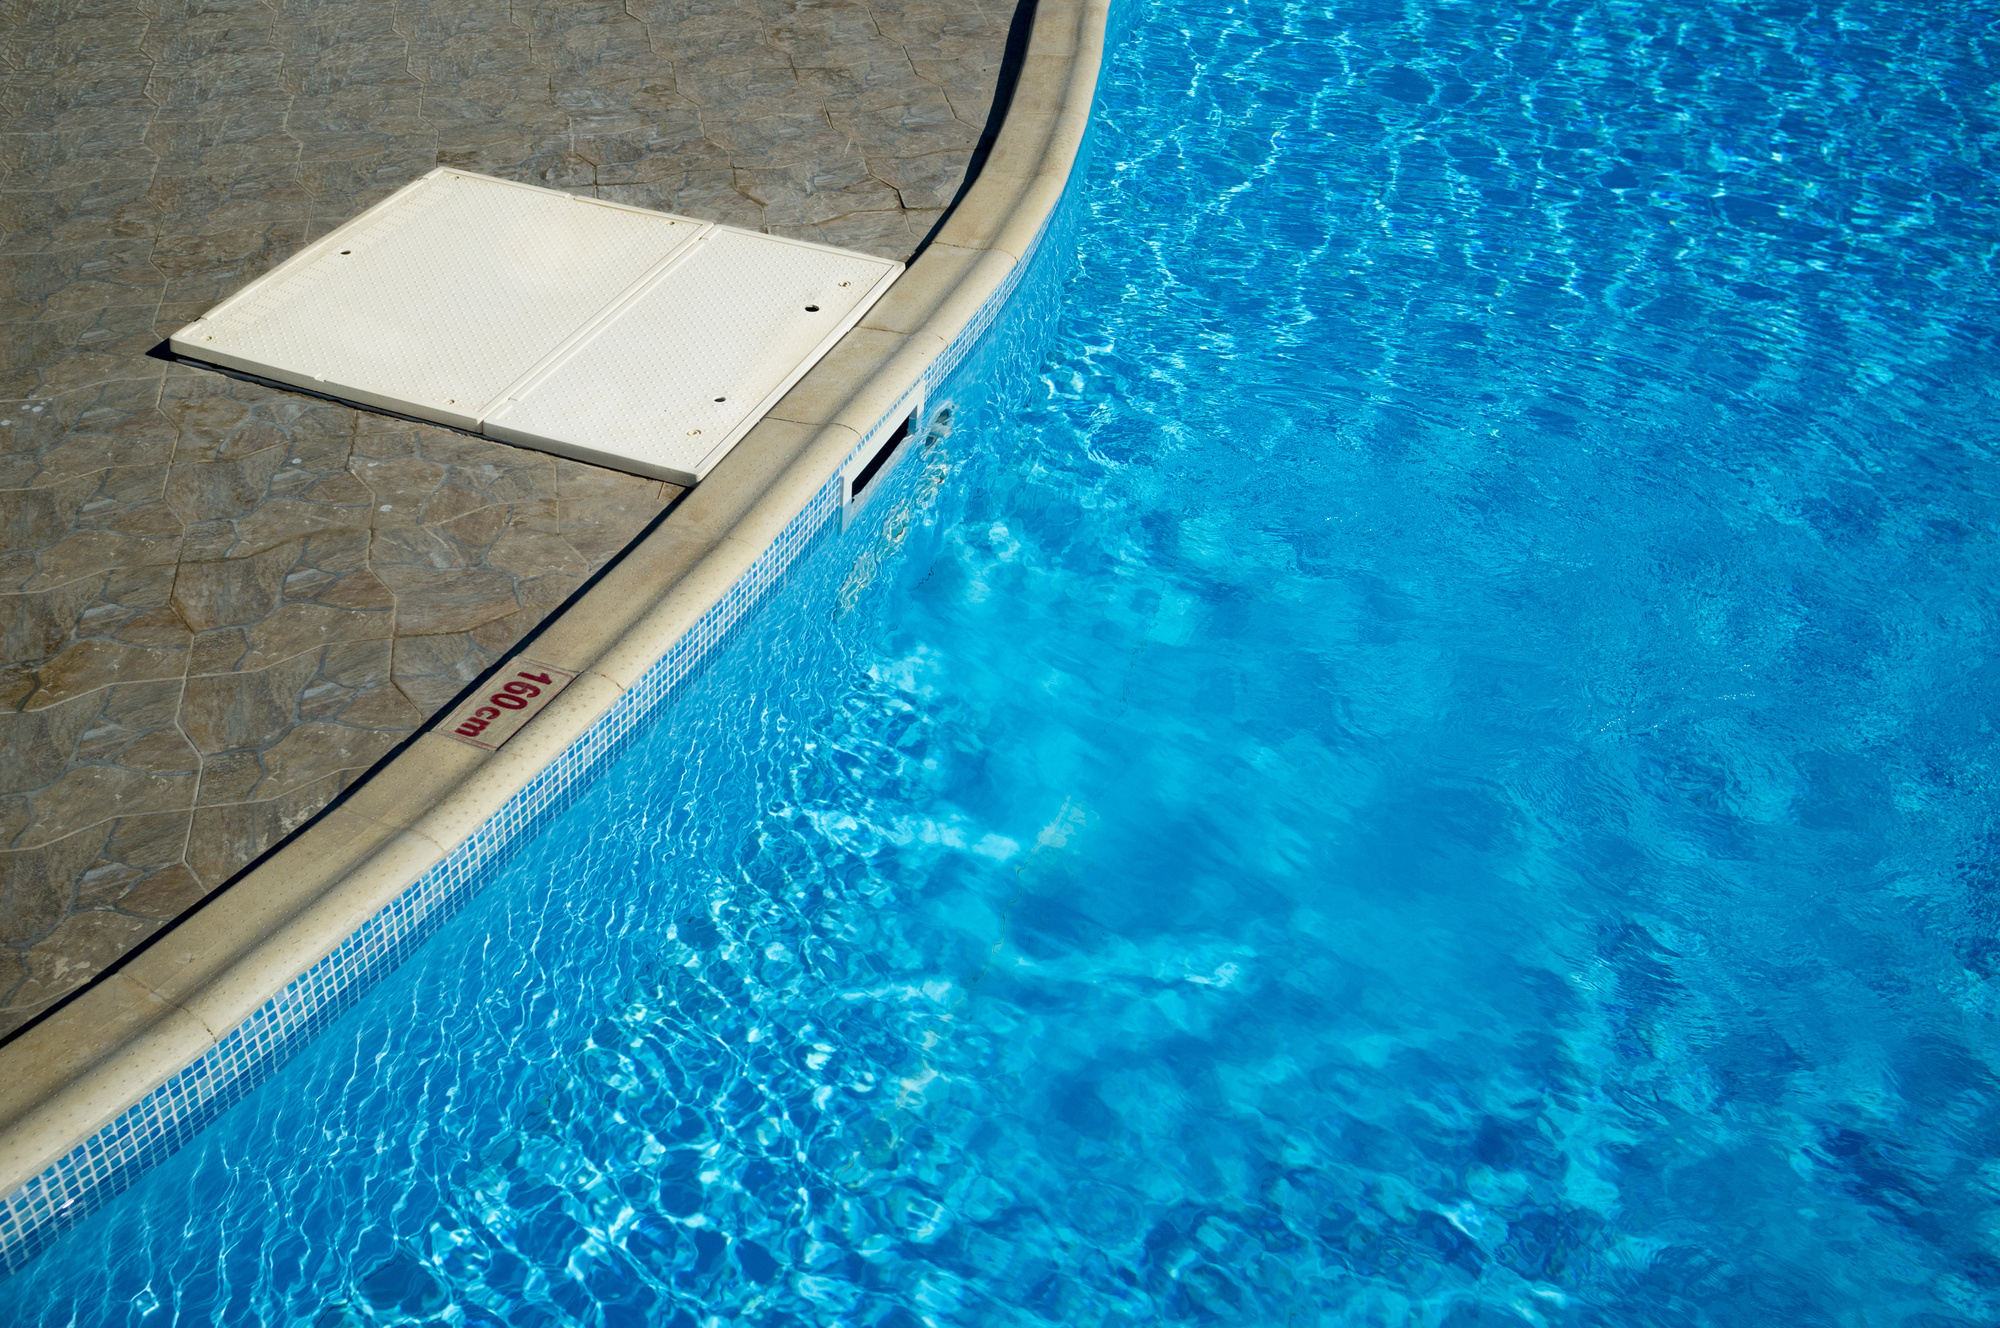 The Common Types of Swimming Pool Accidents: This is What to Avoid